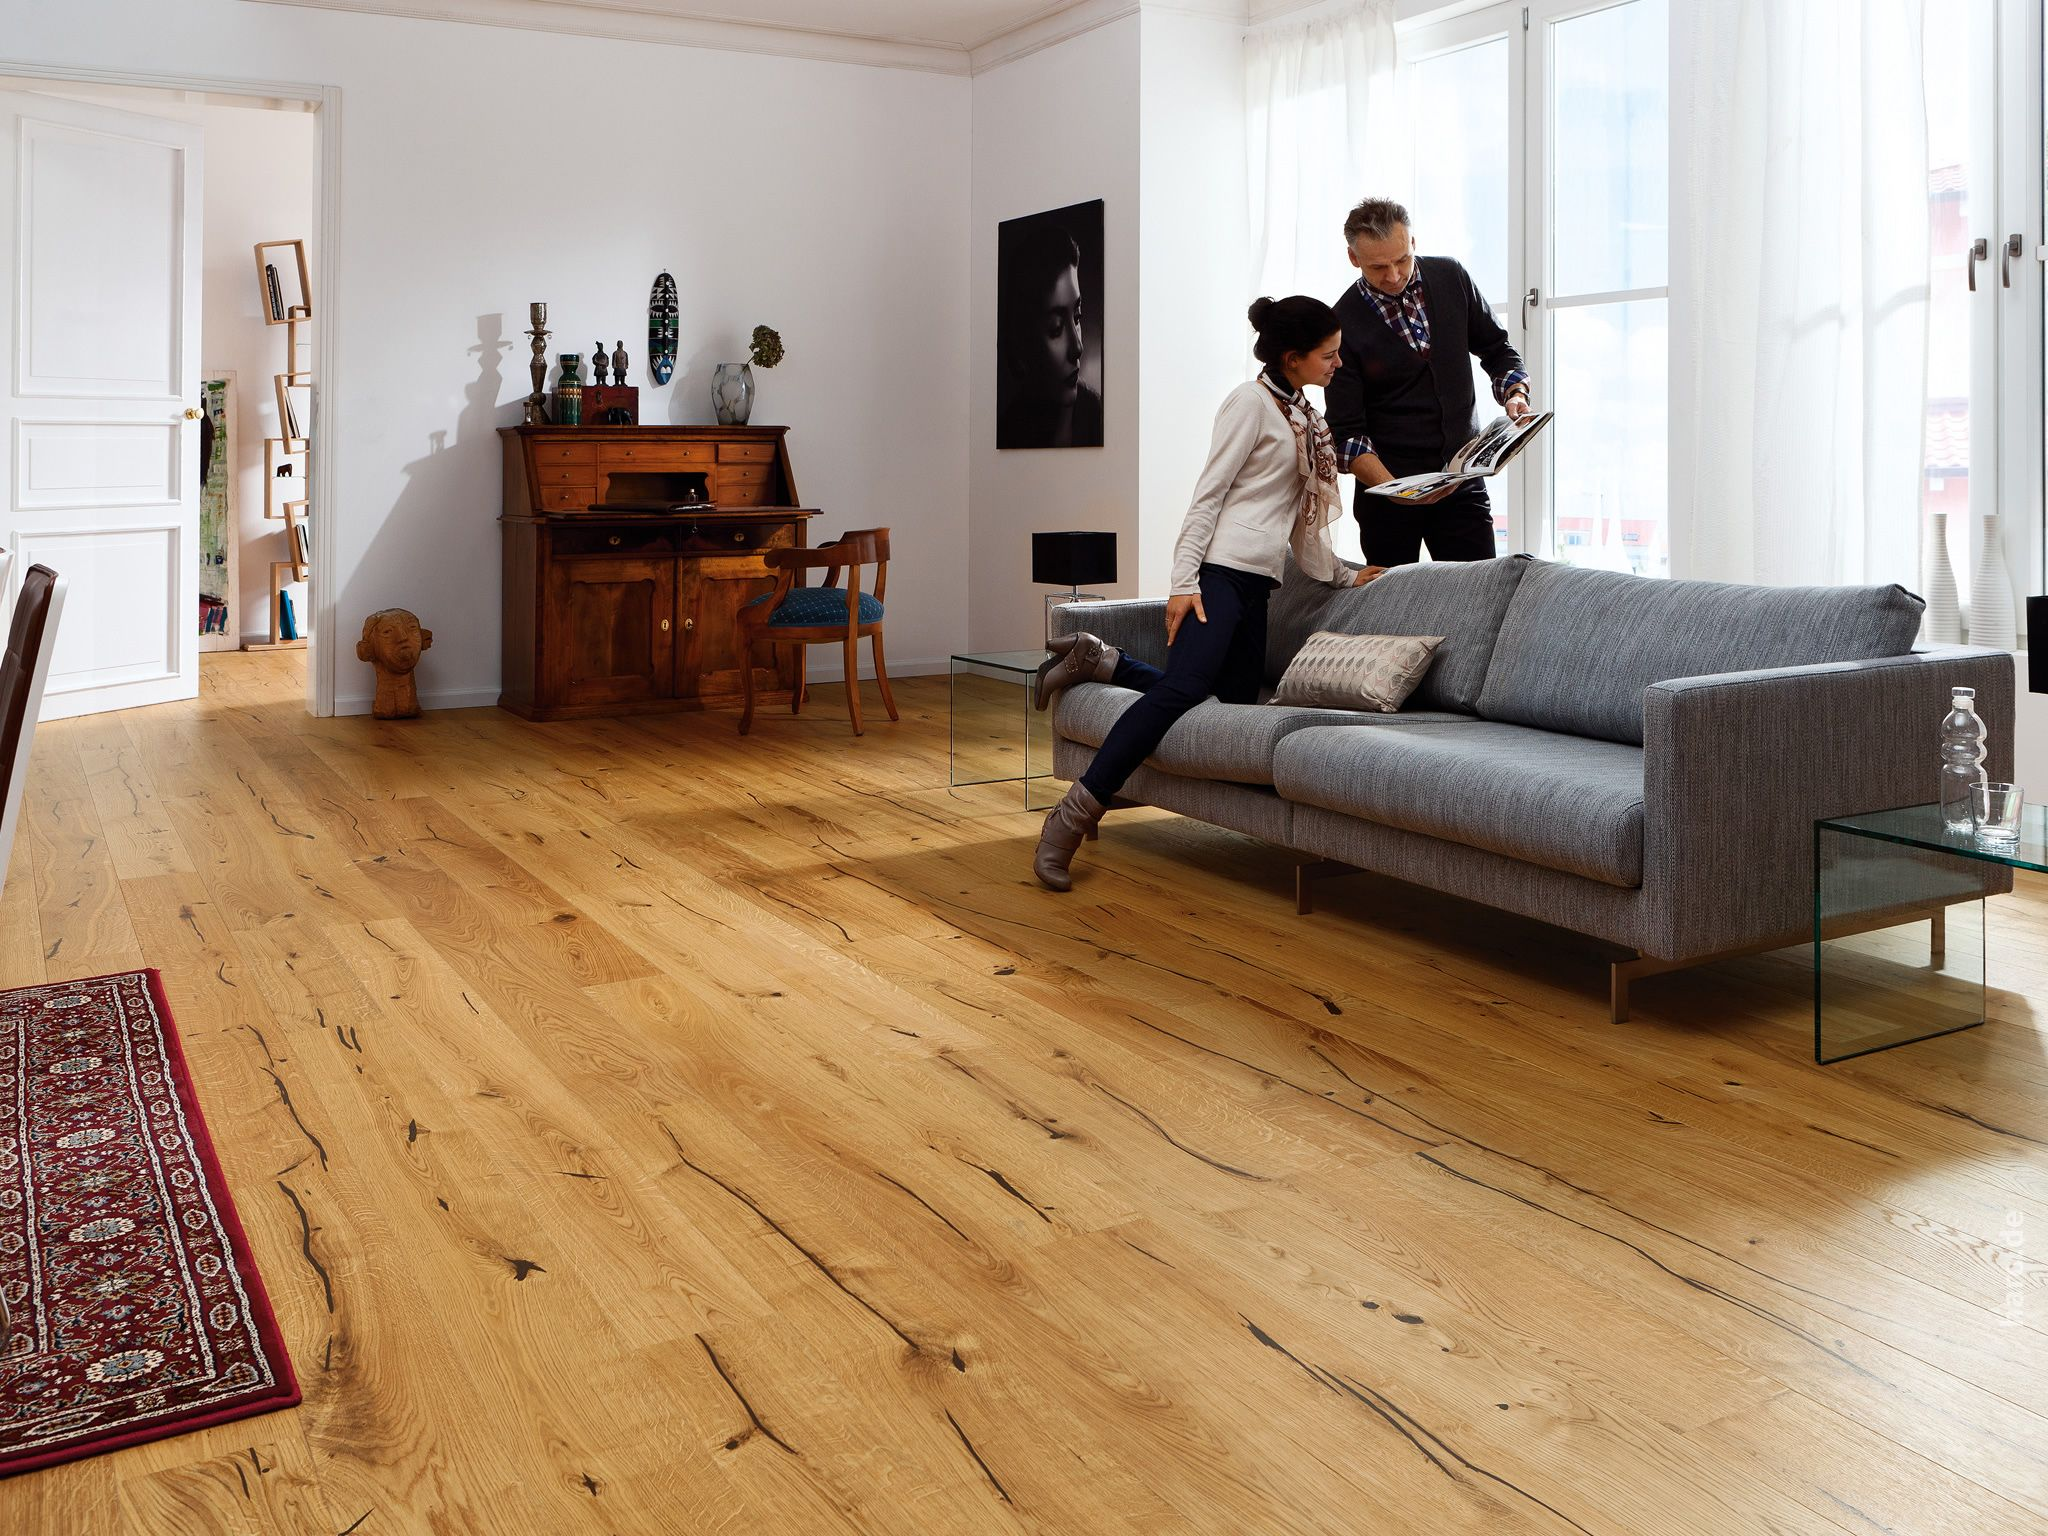 haro parquet 4000 plank 1 strip 4v oak alabama brushed naturalin plus top connect living room. Black Bedroom Furniture Sets. Home Design Ideas